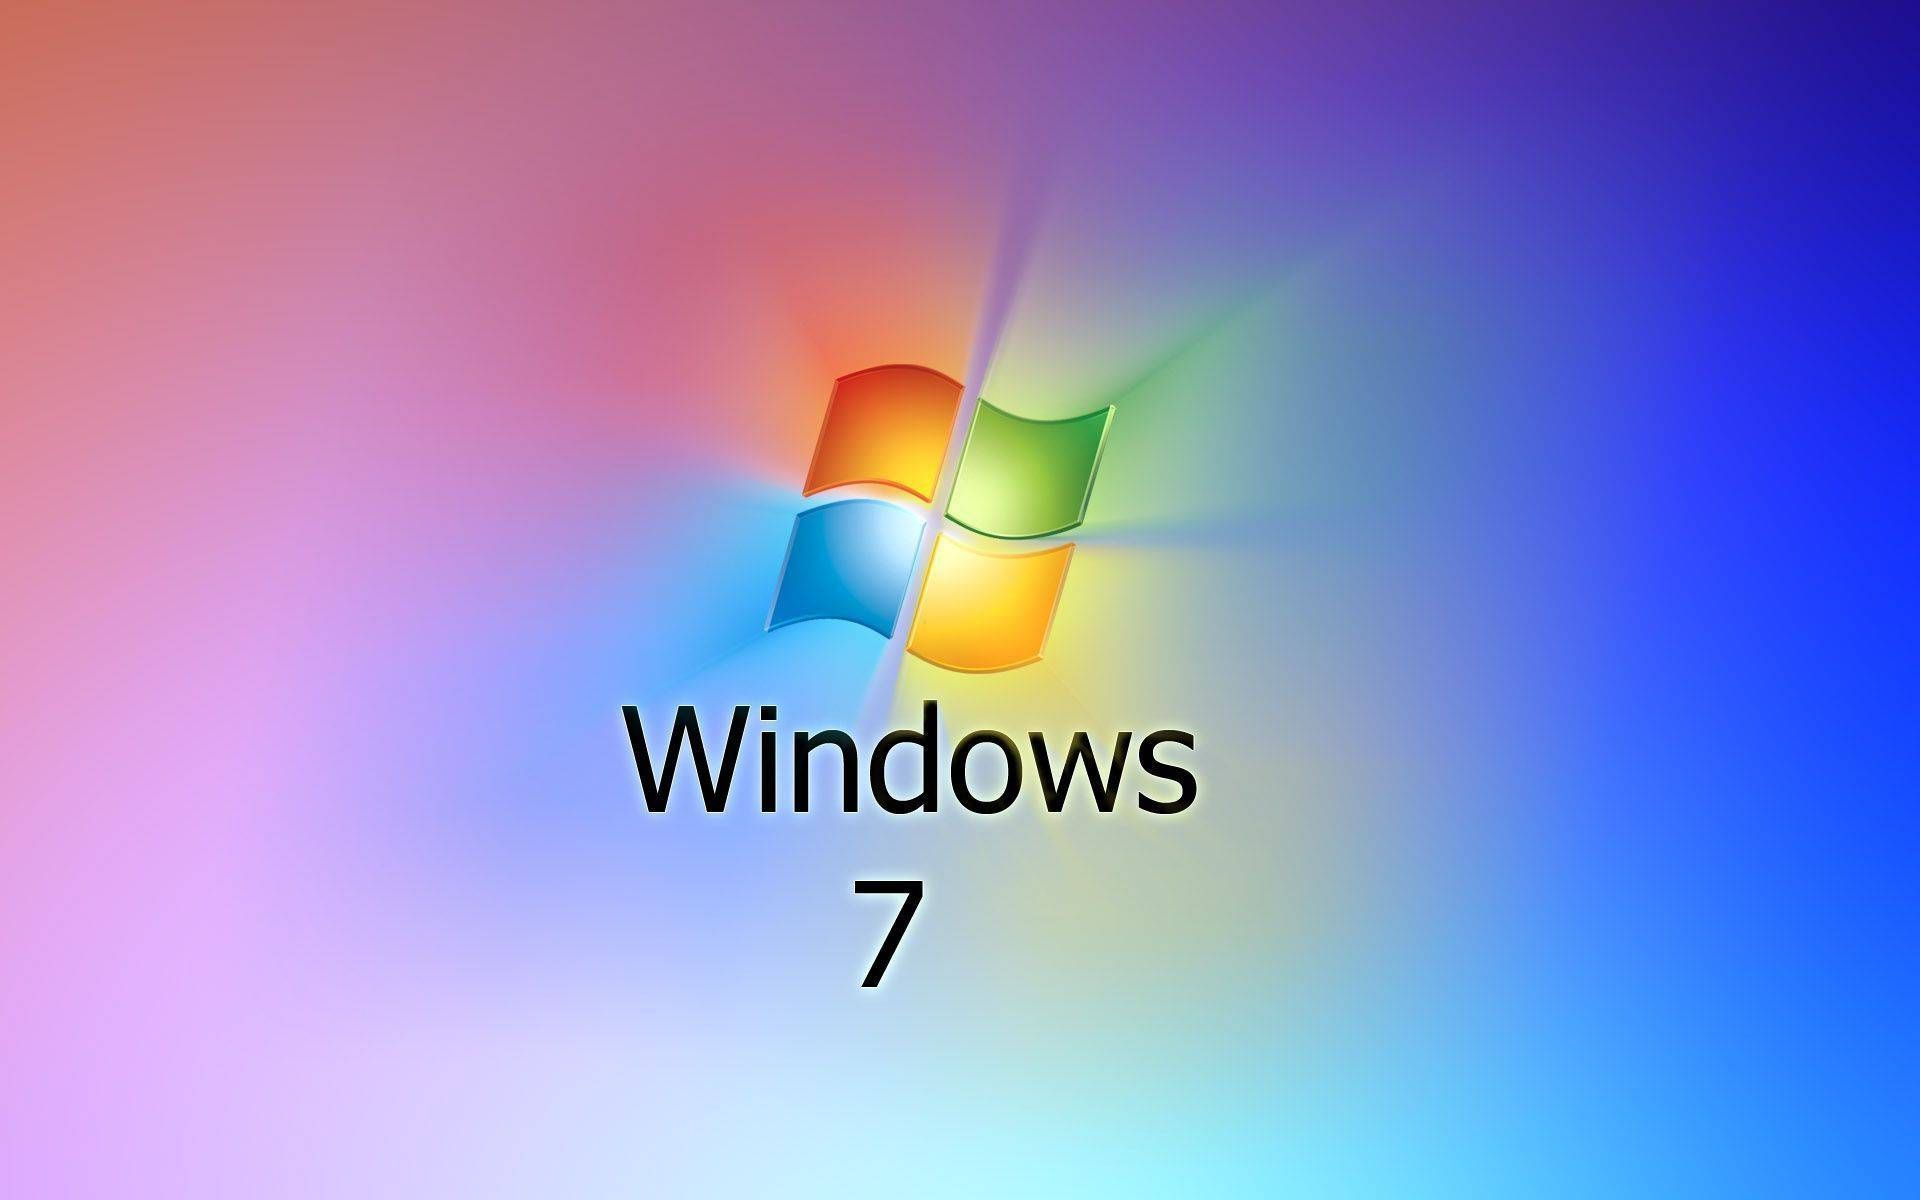 3D Animation Wallpapers For Windows 7 Group (60+)